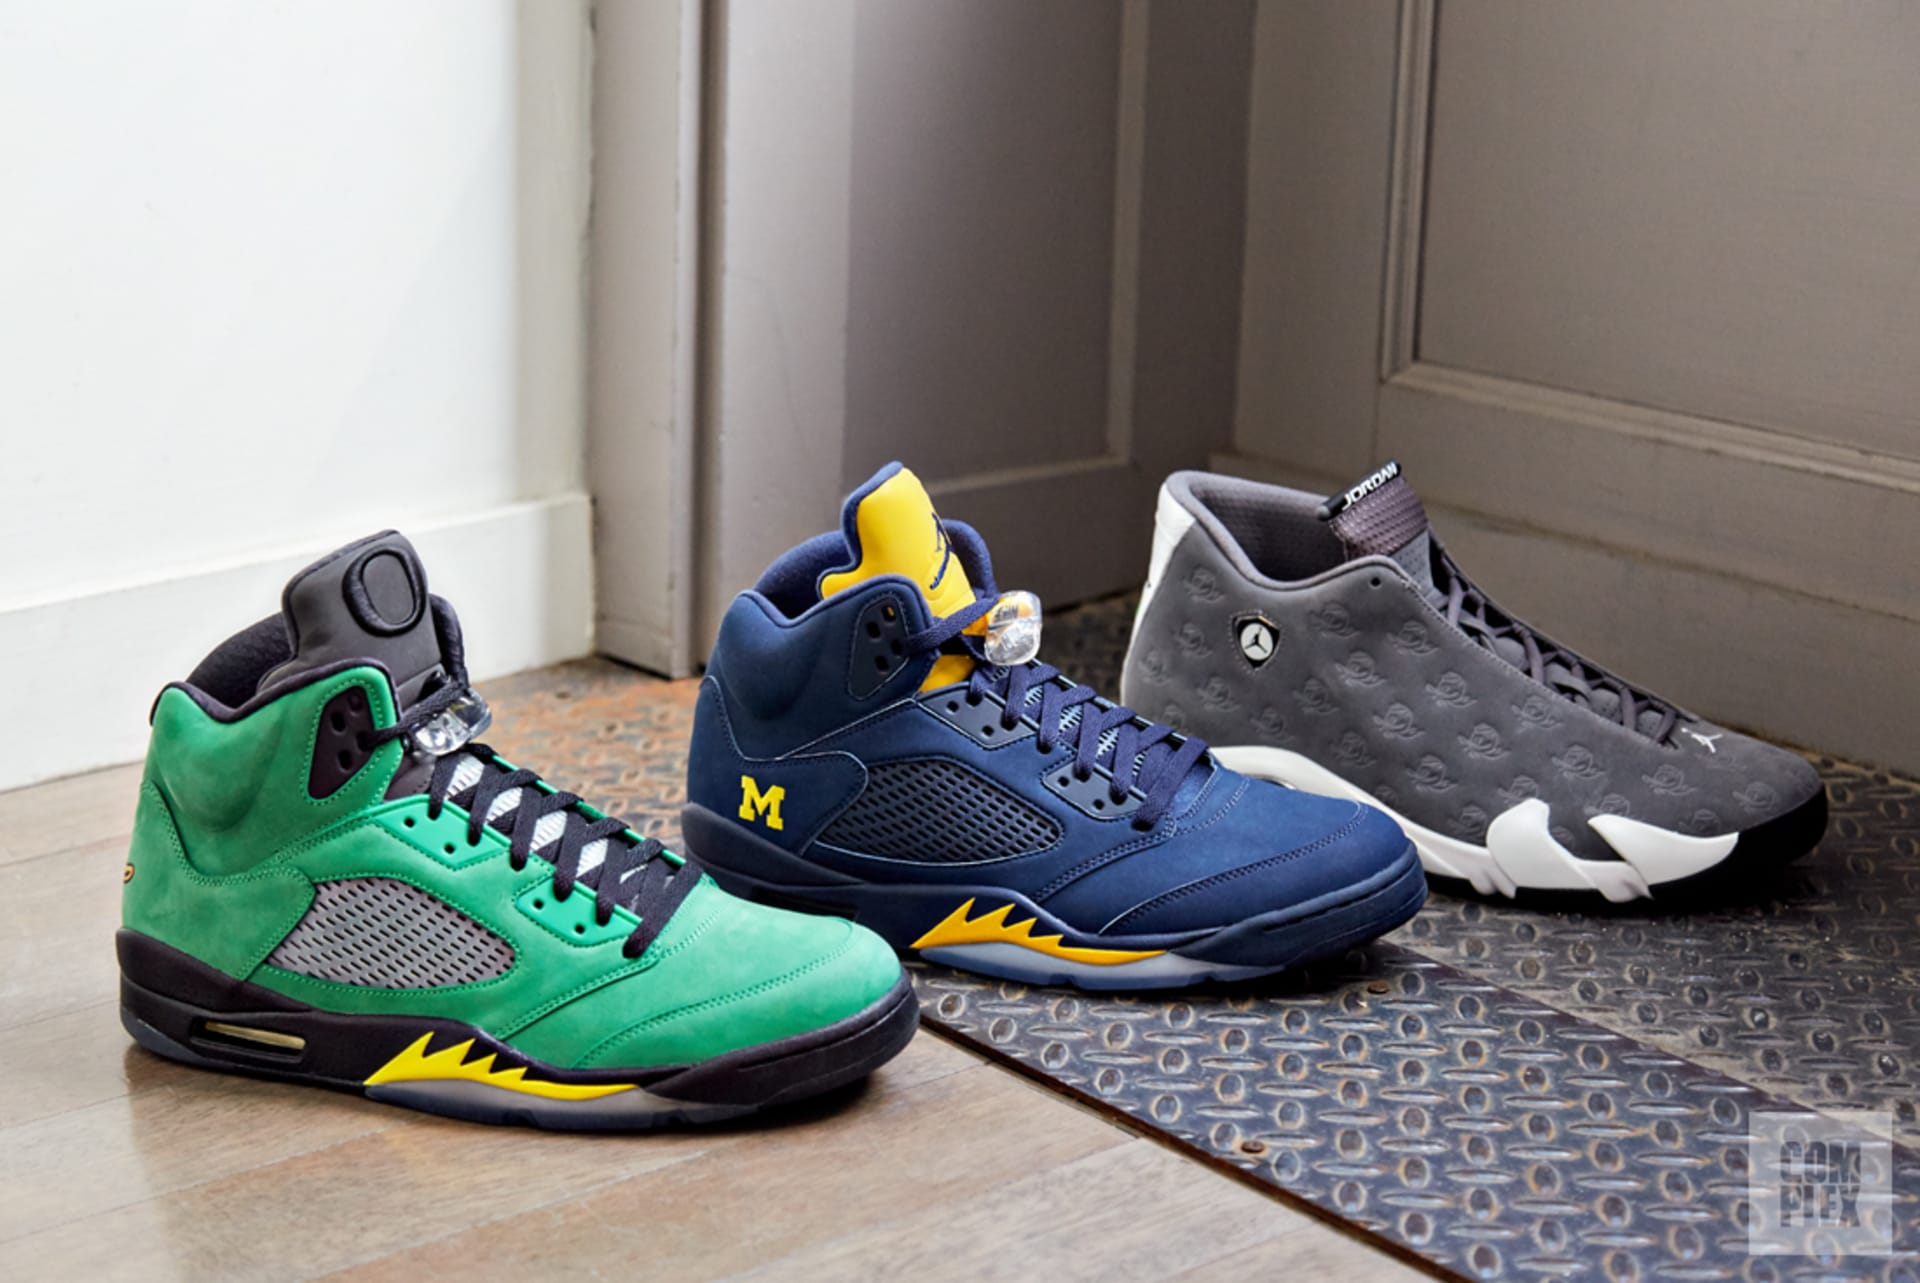 innovative design 3cd30 33794 Air Jordan PEs made for the University of Oregon and Michigan. Sneakers  courtesy of Stadium Goods. Image via Complex Original David Cabrera